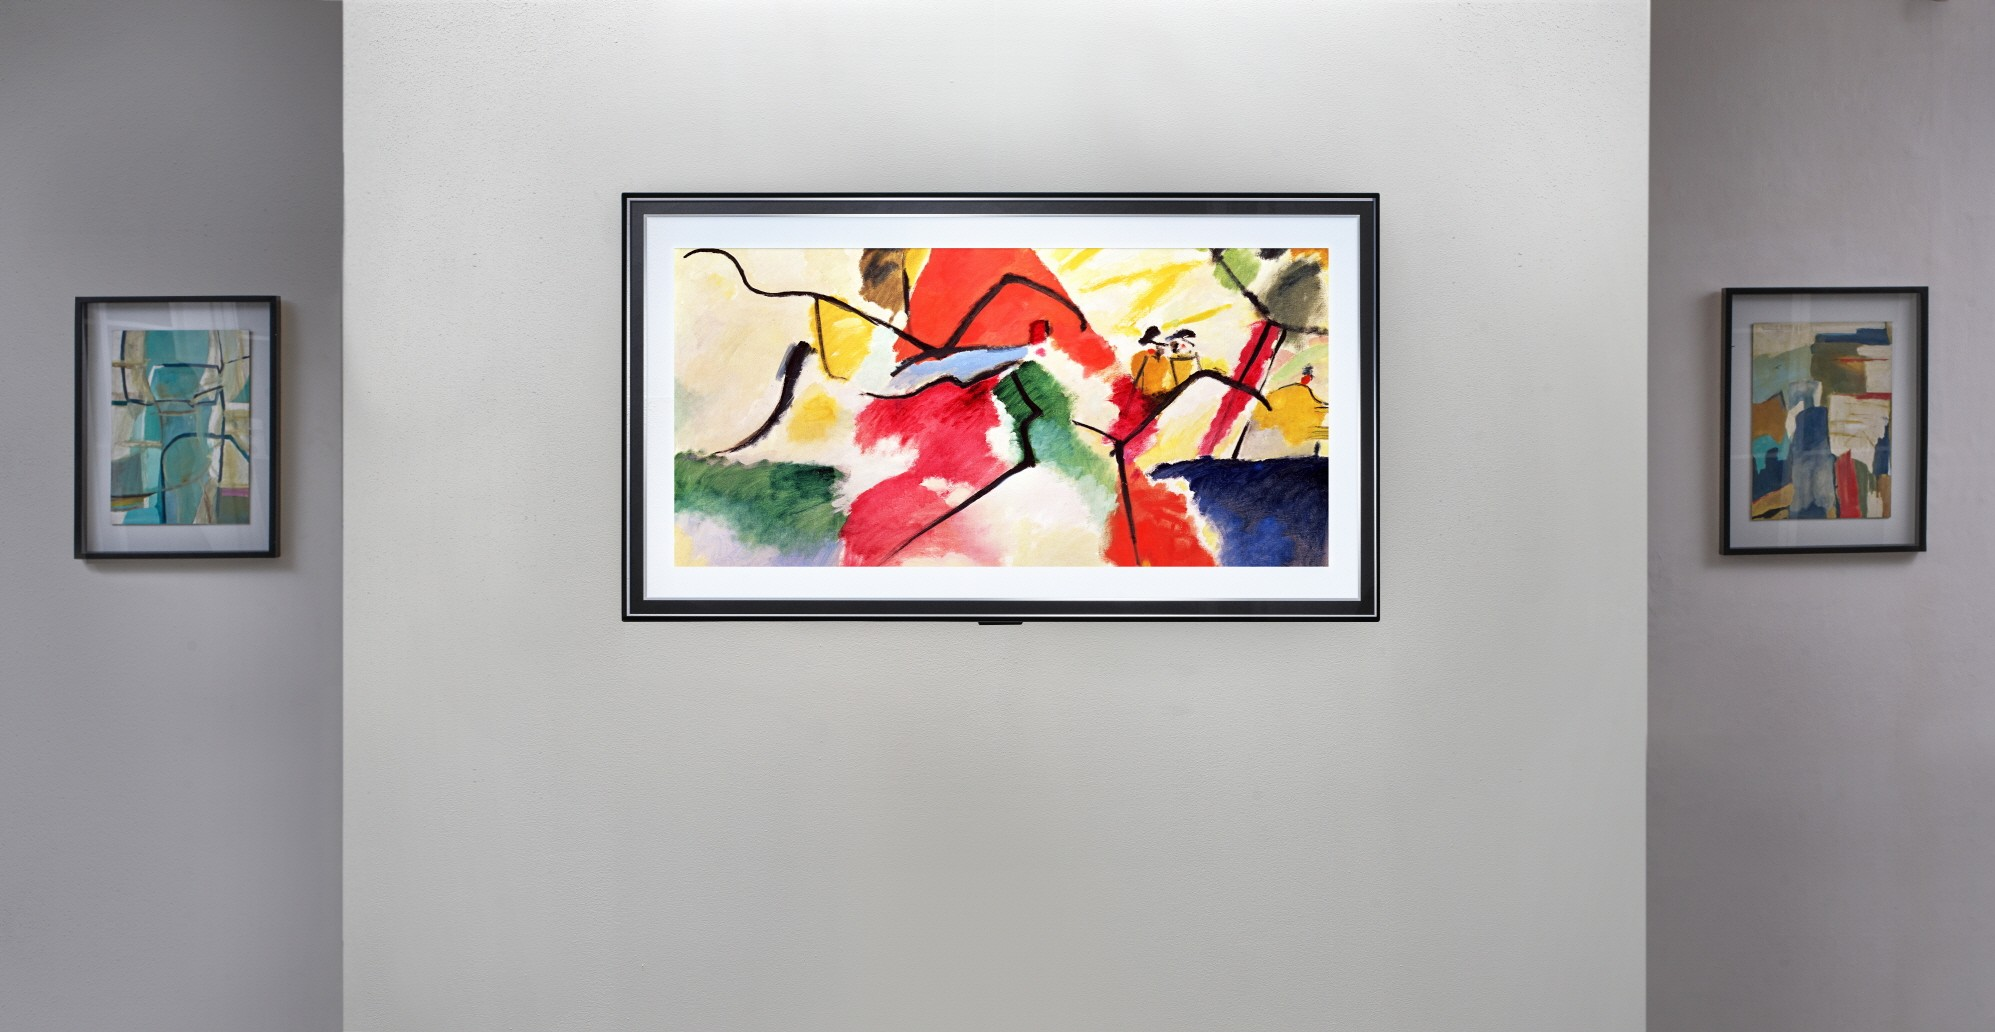 Front view of LG Gallery series model GX hanging flush on the wall of an art exhibition as it blends effortlessly in between other pieces on display